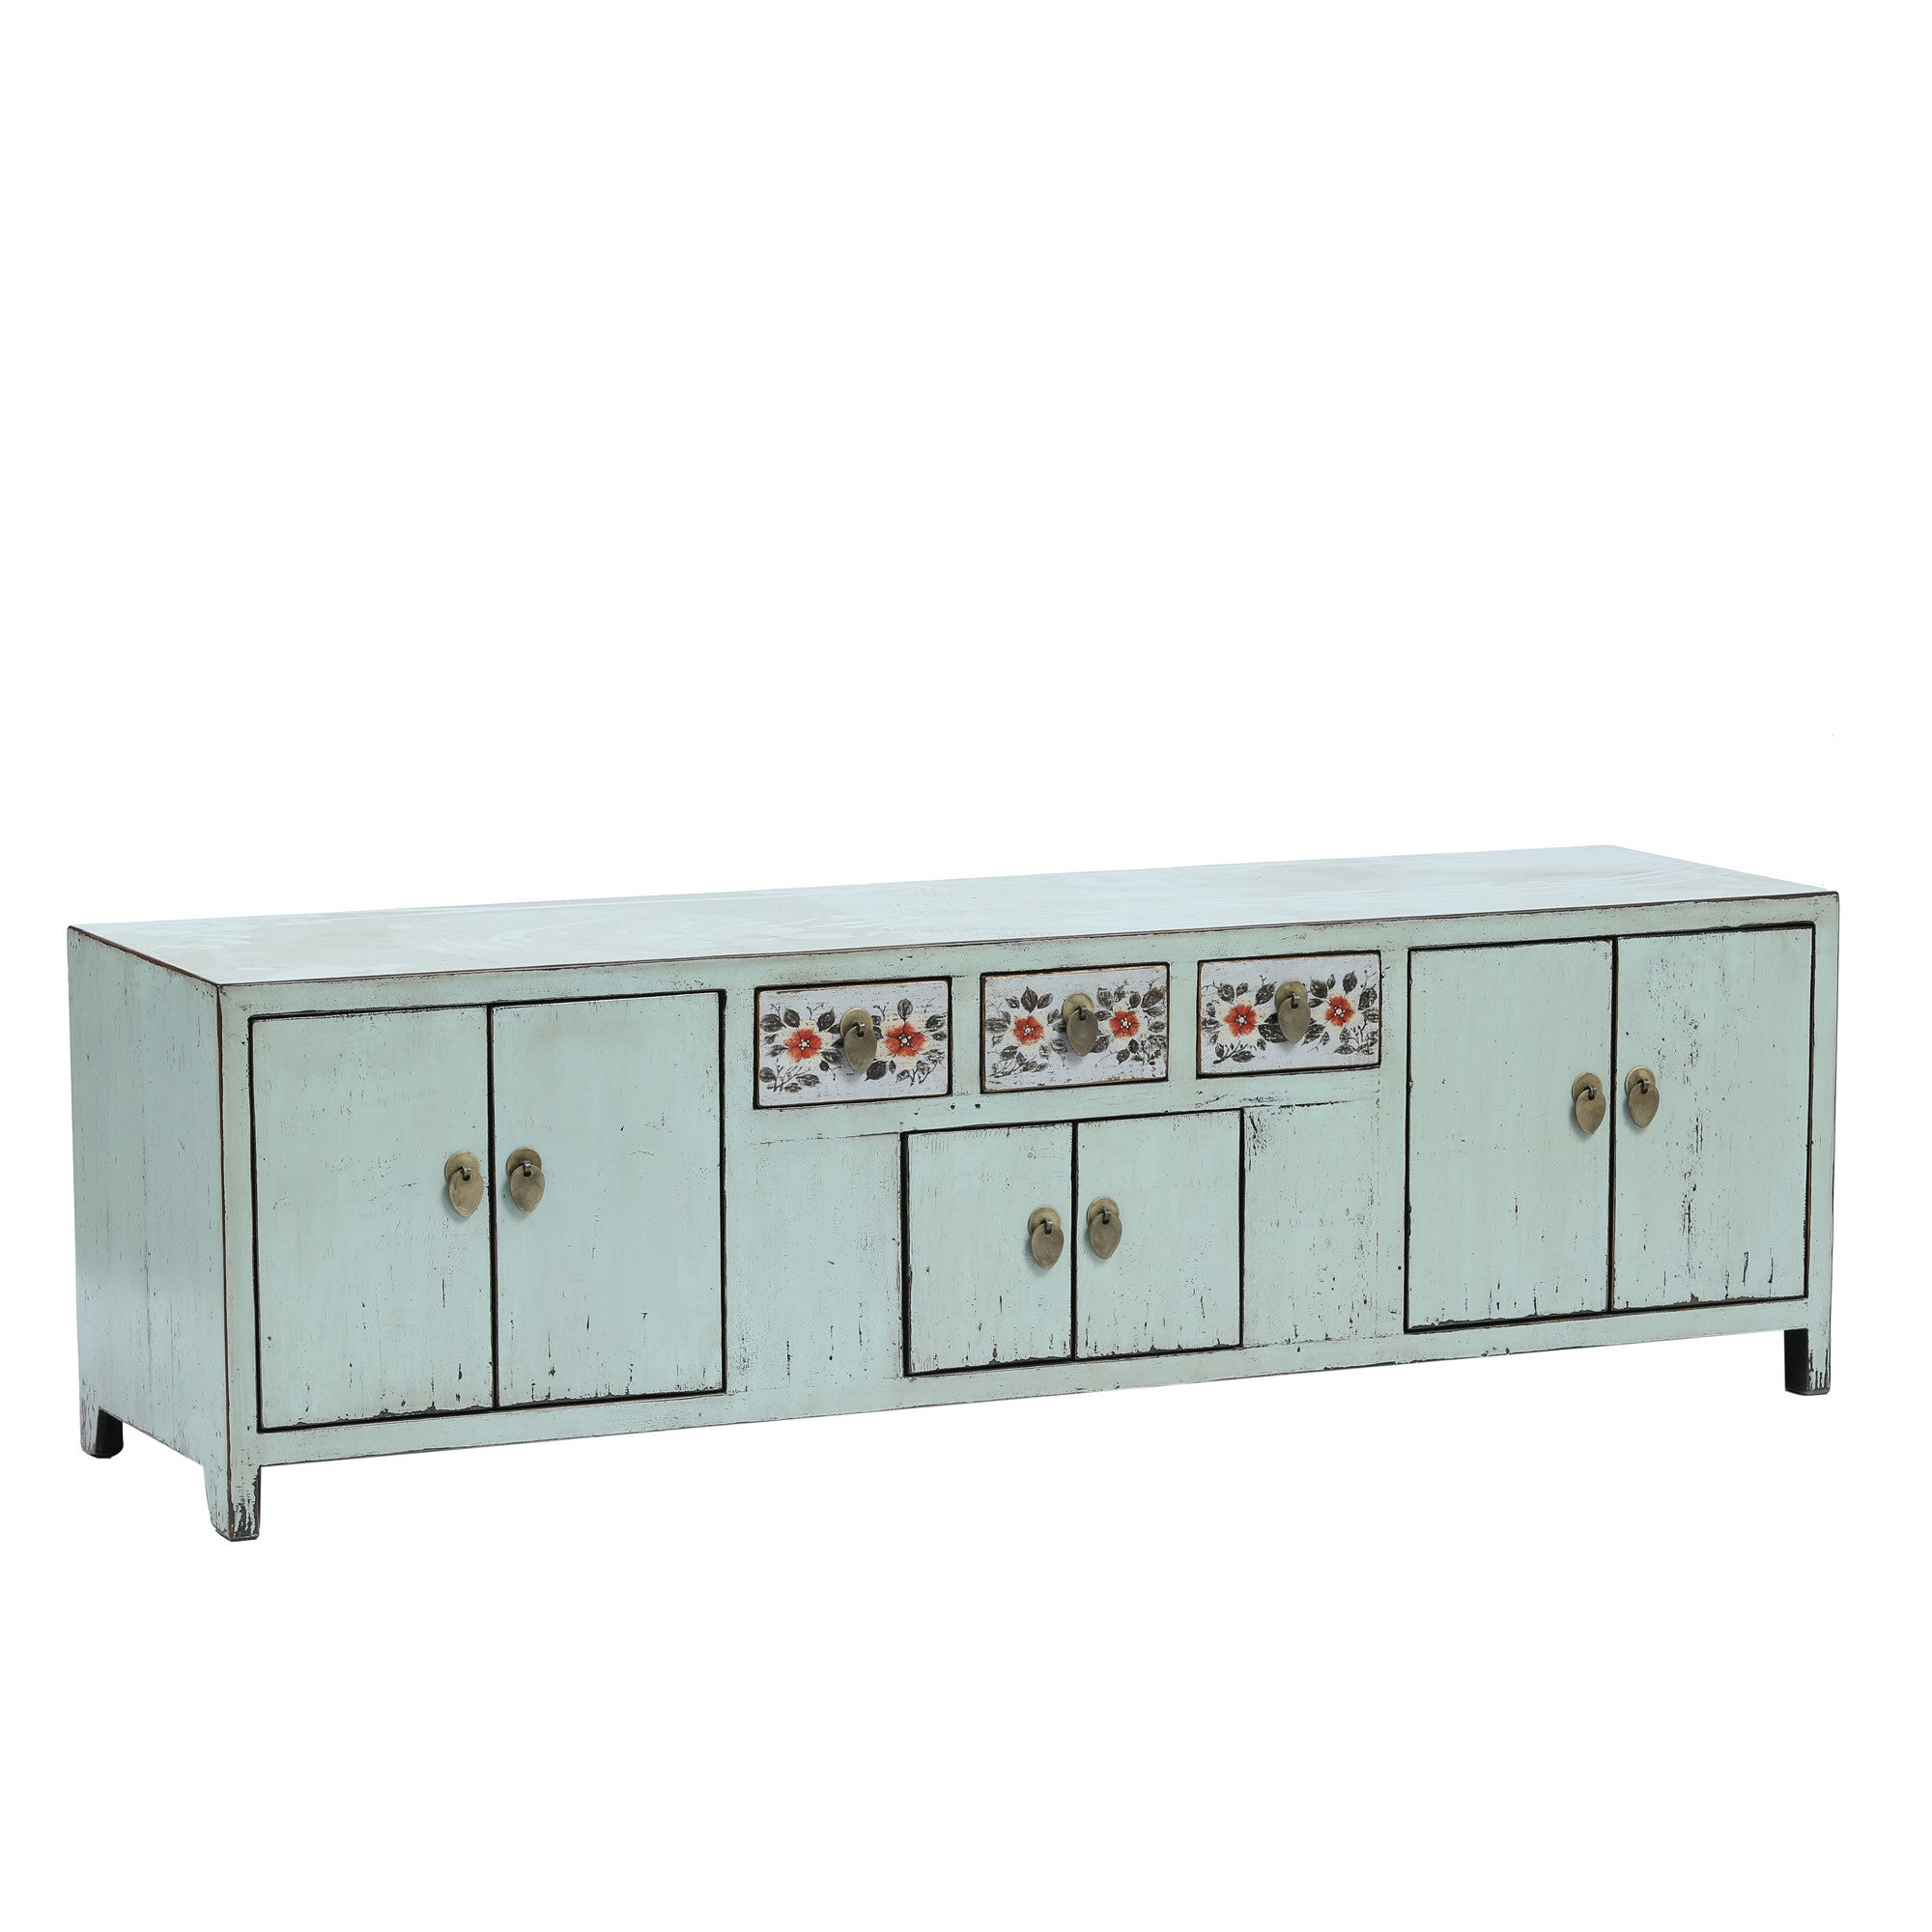 Light Blue Low Sideboard with Red Flowers side view